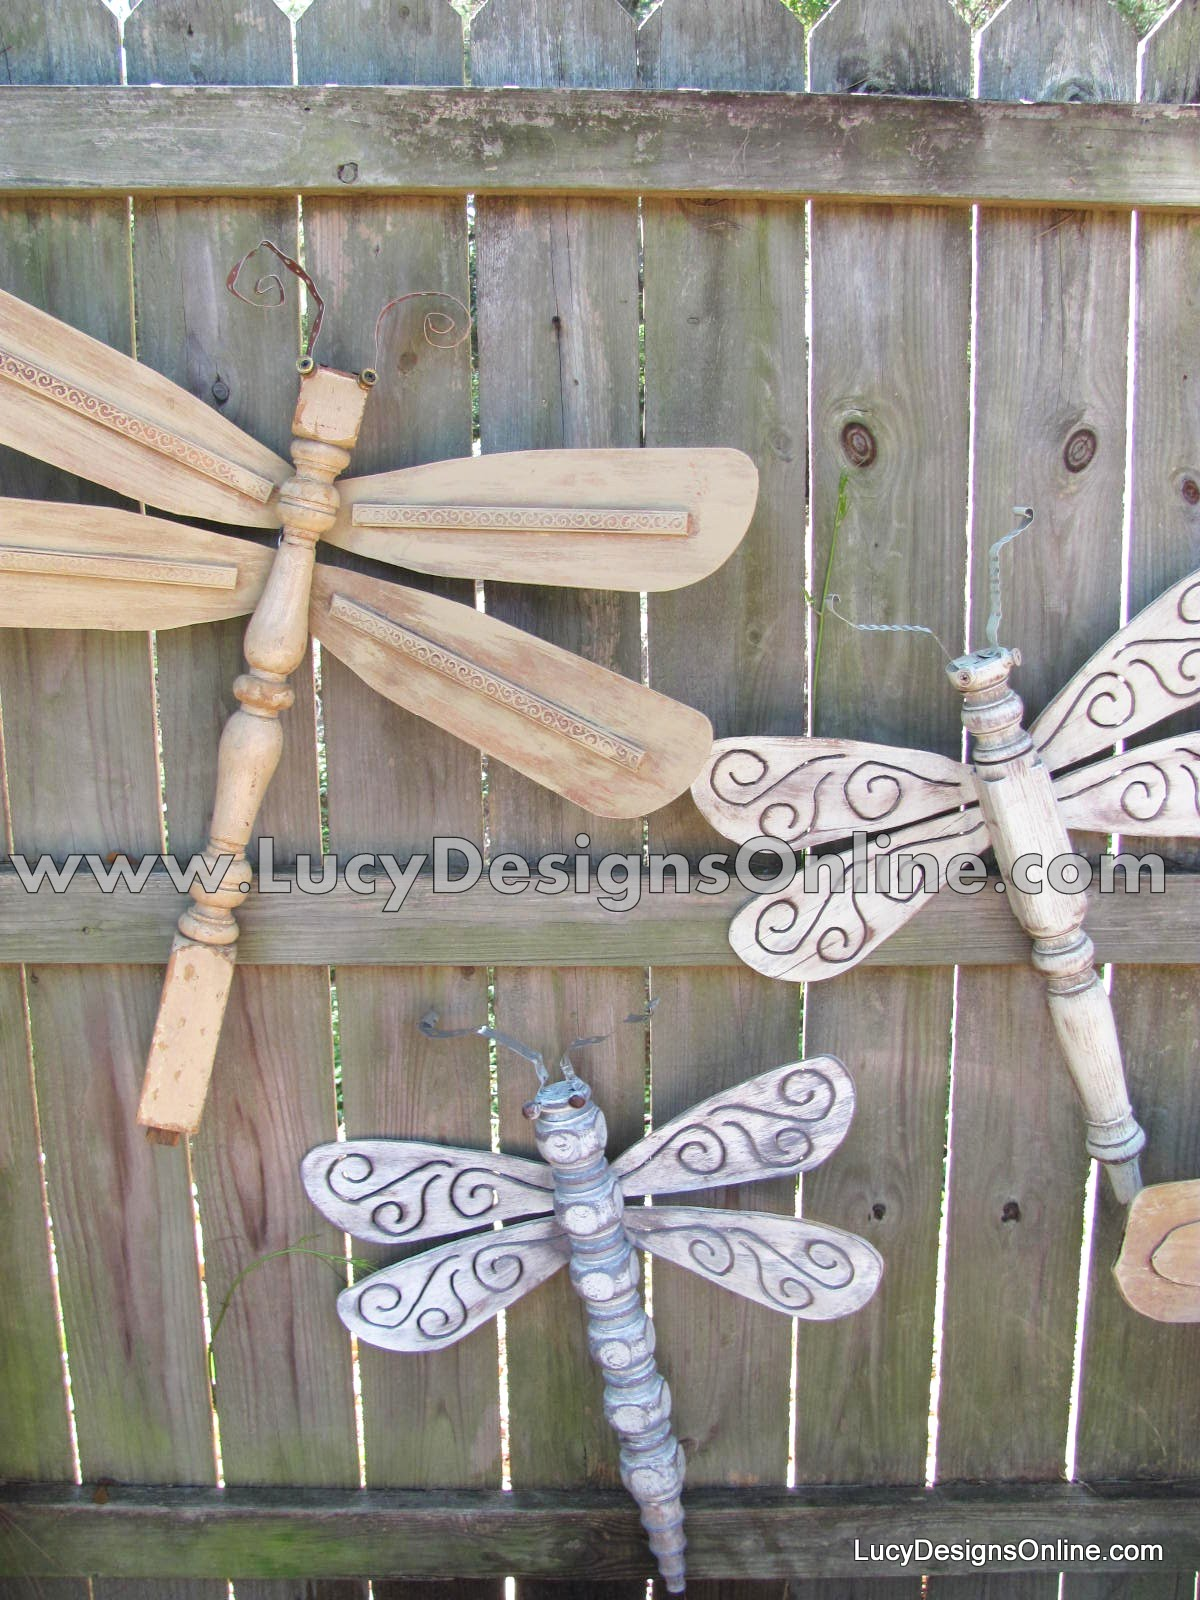 The Original Table Leg Dragonflies With Ceiling Fan Blade